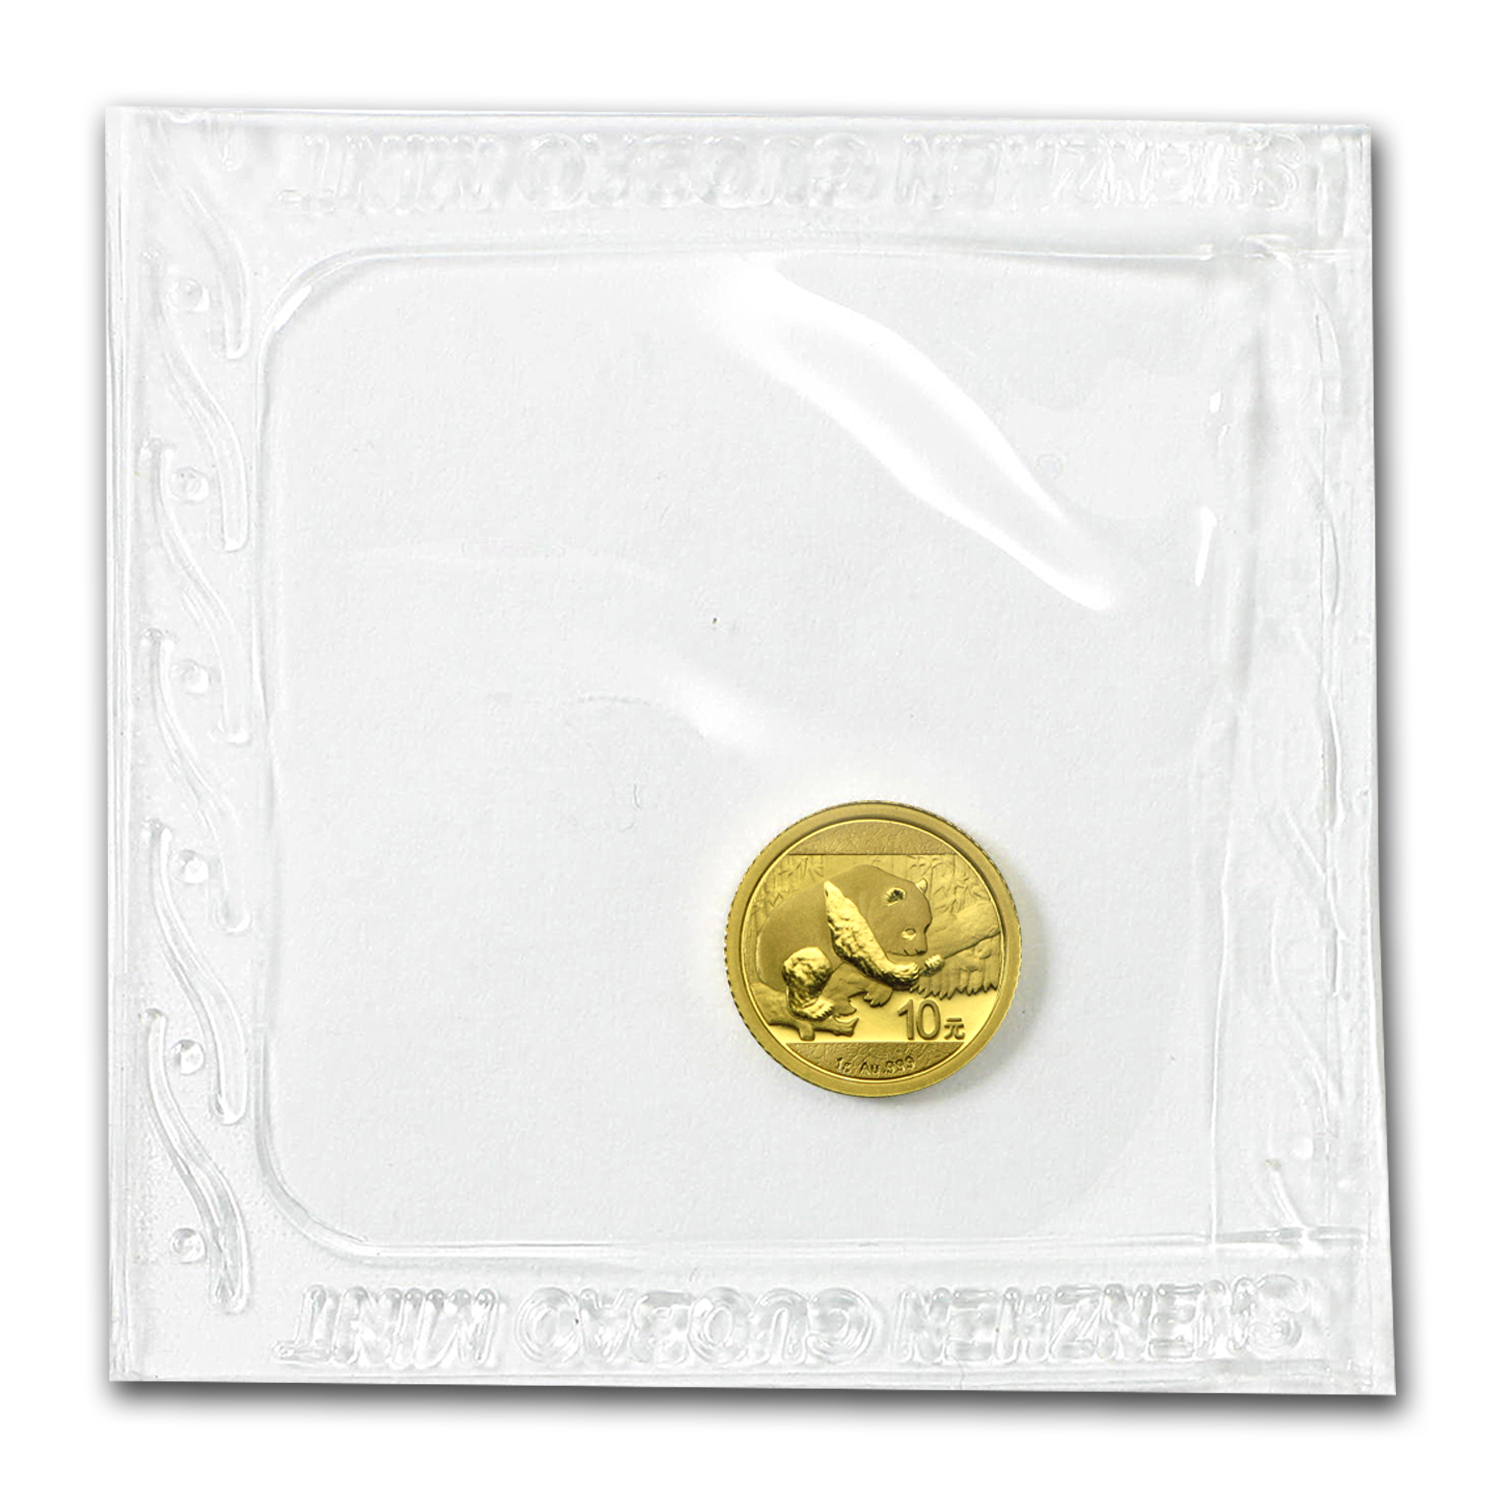 2016 China 1 gram Gold Panda BU (Sealed)